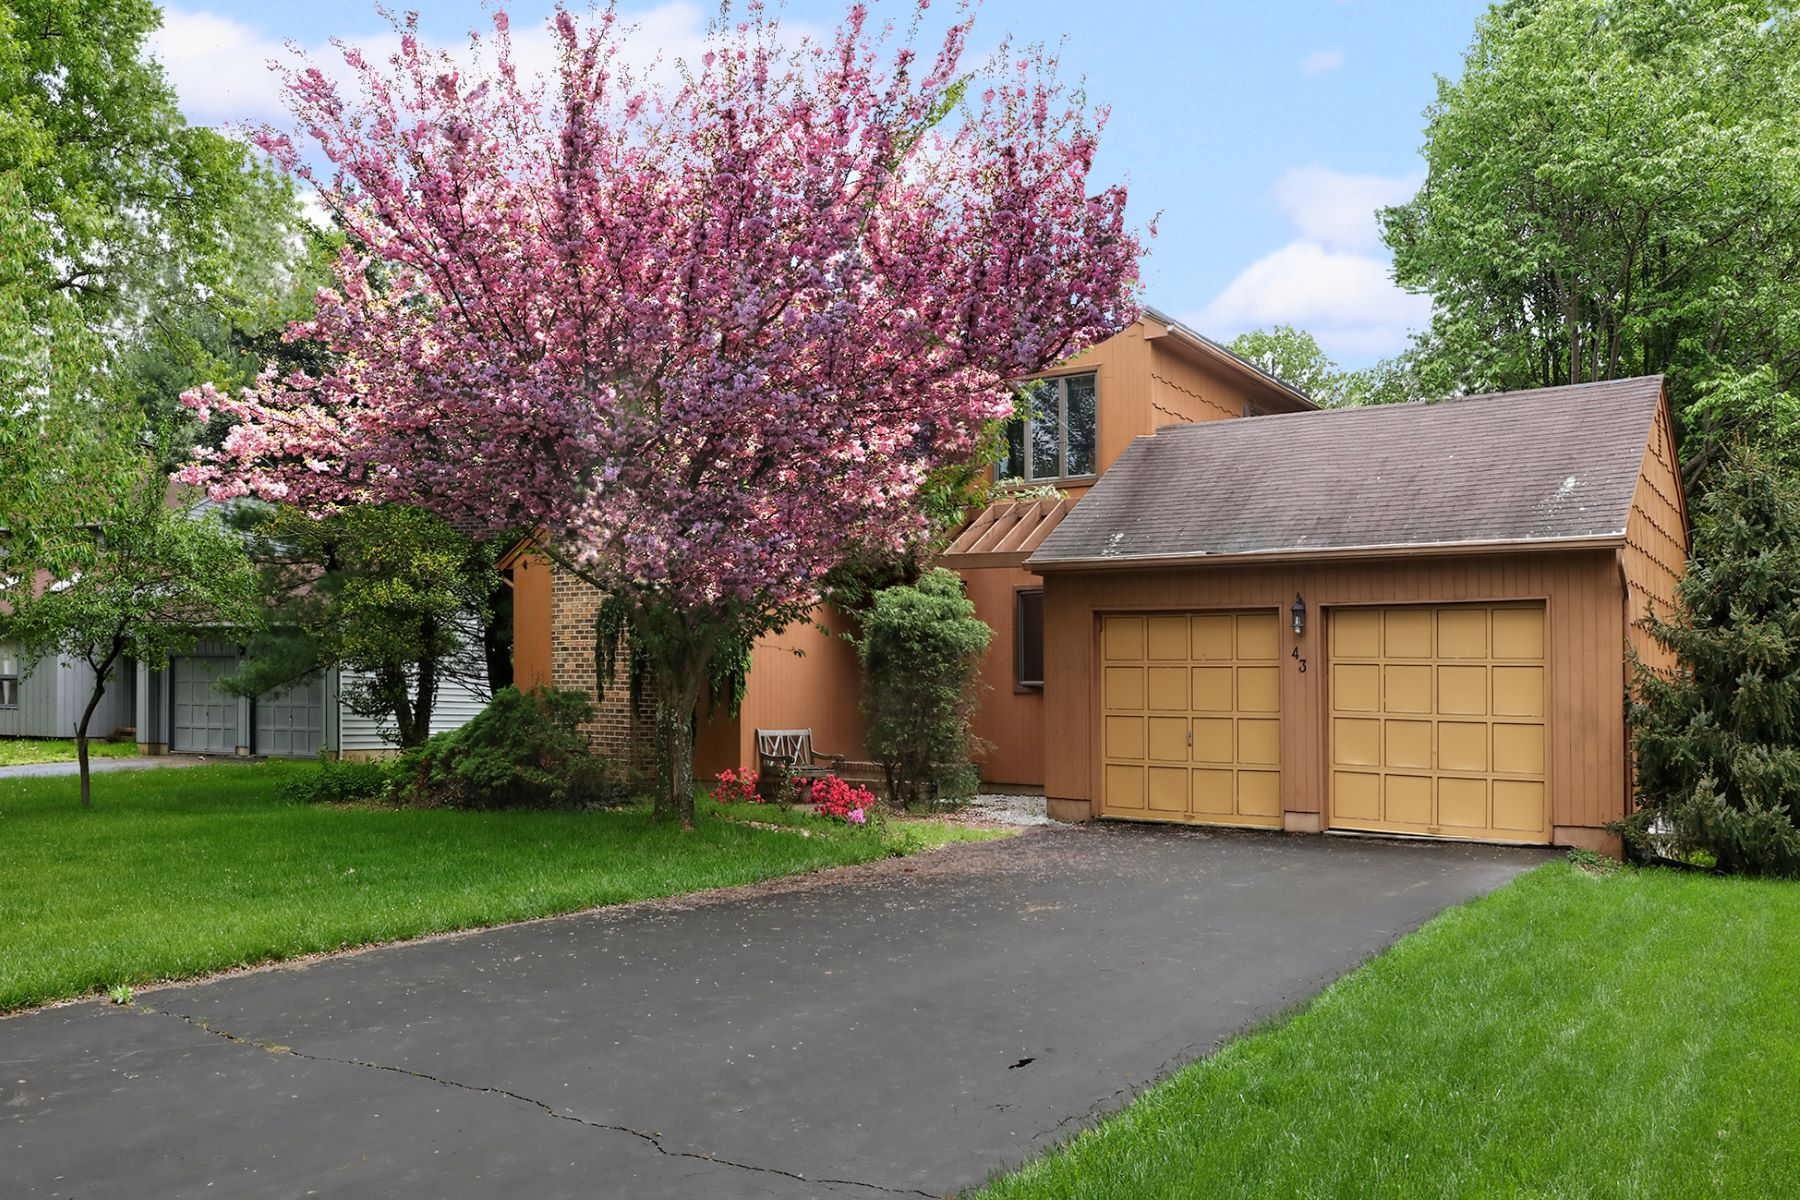 Single Family Homes のために 売買 アット Flowering Trees Surround Modern Lawrenceville Home 43 Laurel Wood Drive Lawrenceville, ニュージャージー 08648 アメリカ